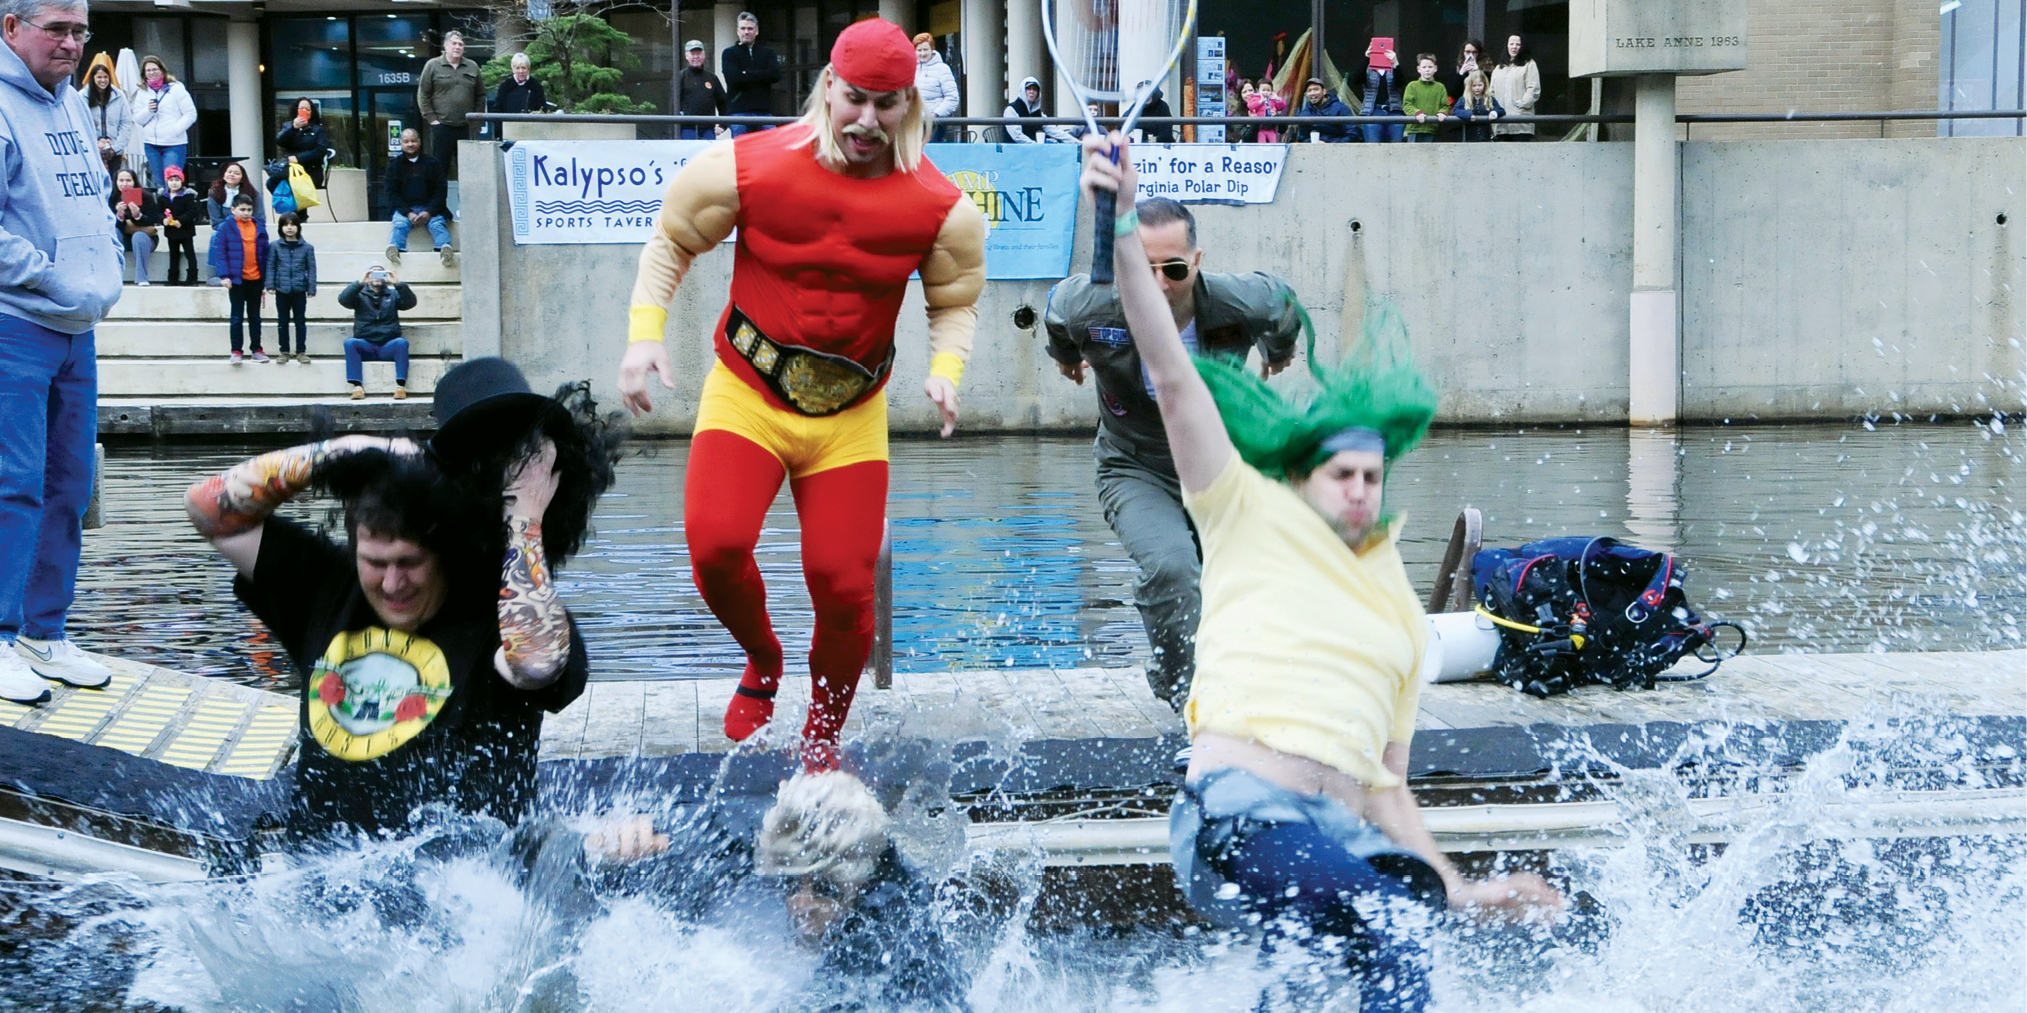 10th Annual Virginia Polar Dip